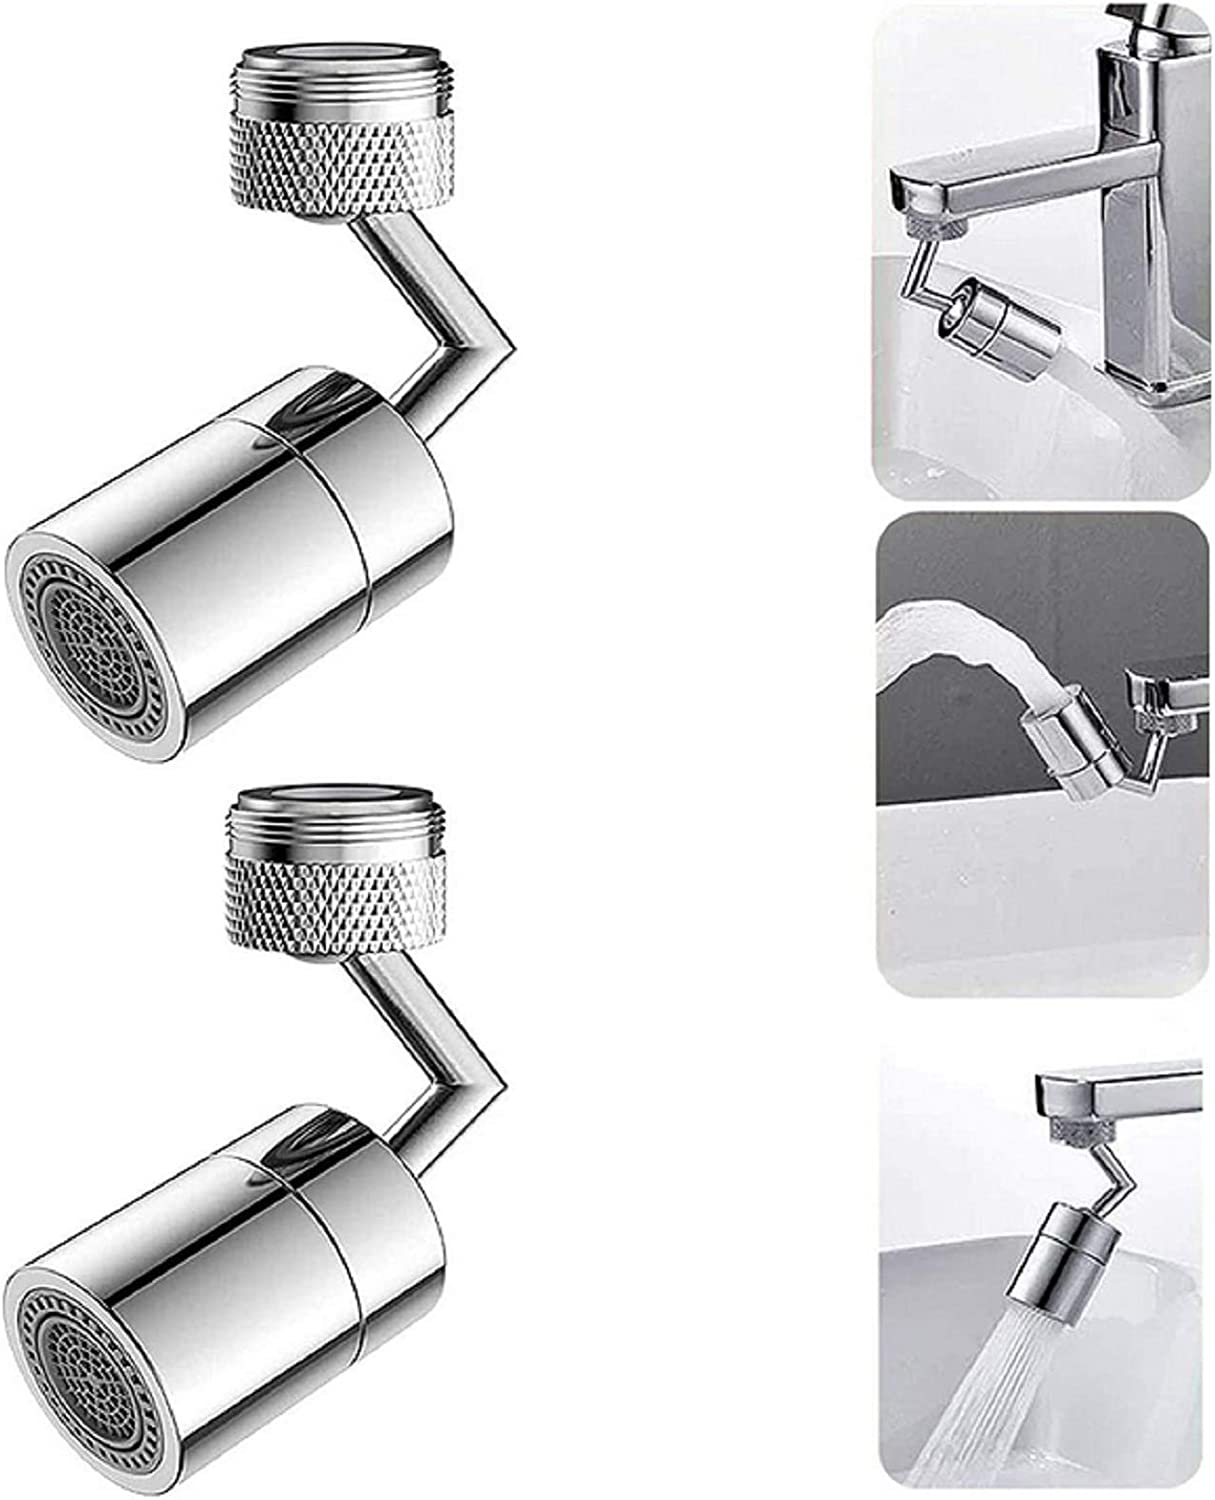 Columbus Mall Universal Splash Filter Faucet Double Rotate Fau Max 50% OFF O-Ring- 720°